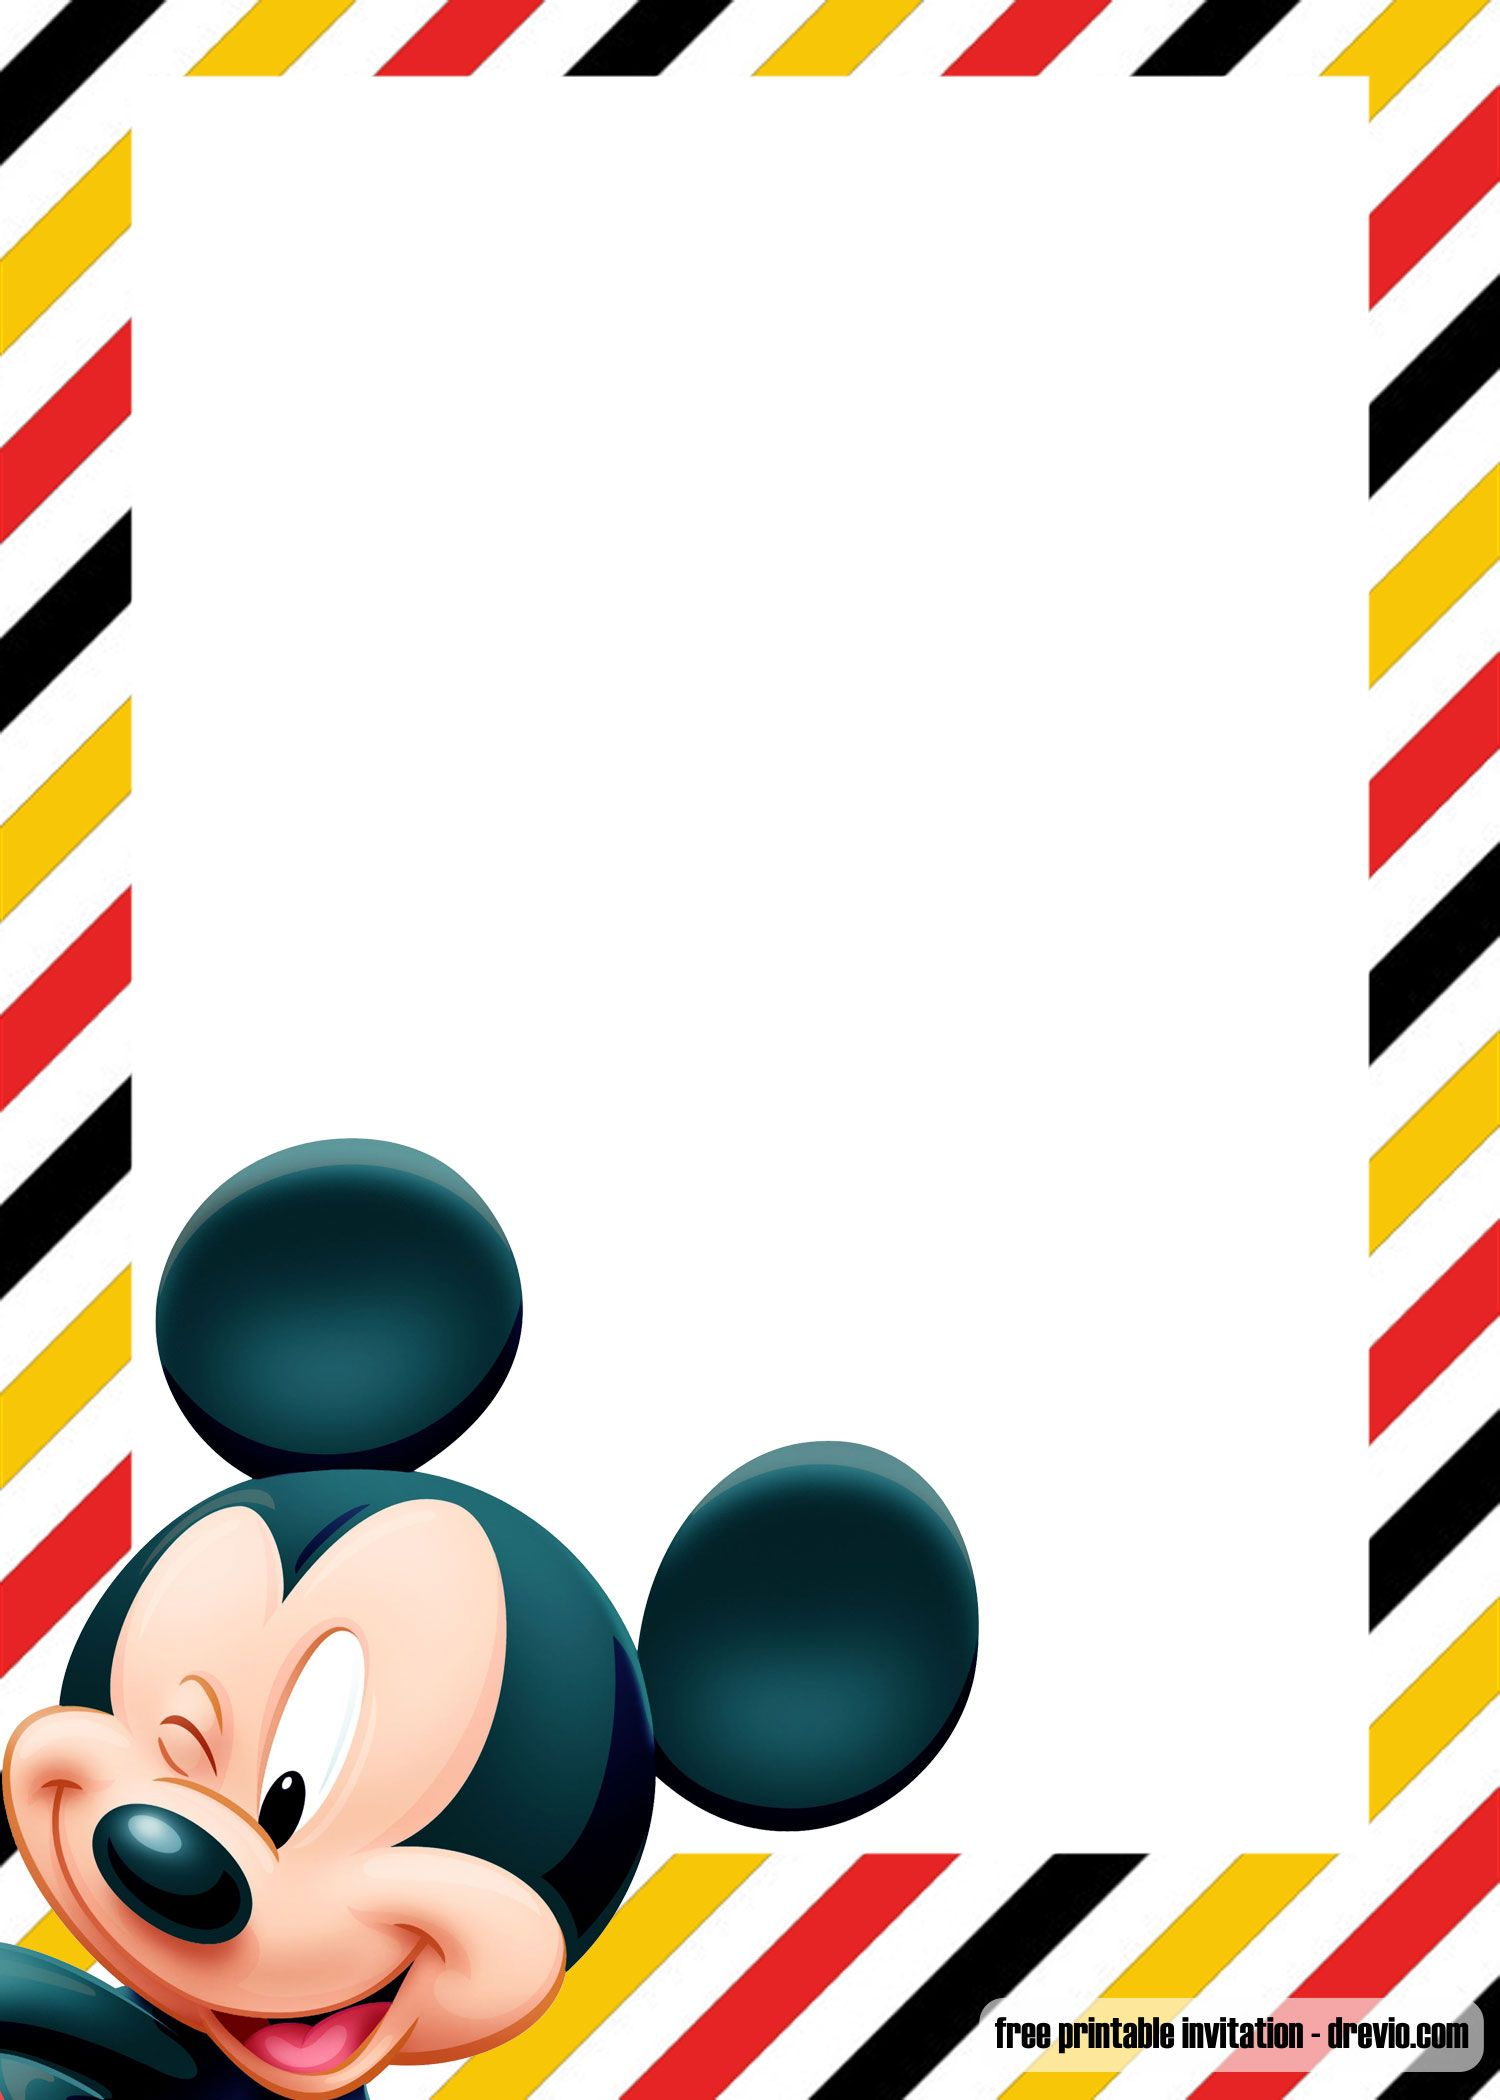 Free Printable Oh Toodles Mickey Invitation Templates Mickey Invitations Mickey Mouse Themed Birthday Party Mickey Mouse Invitation